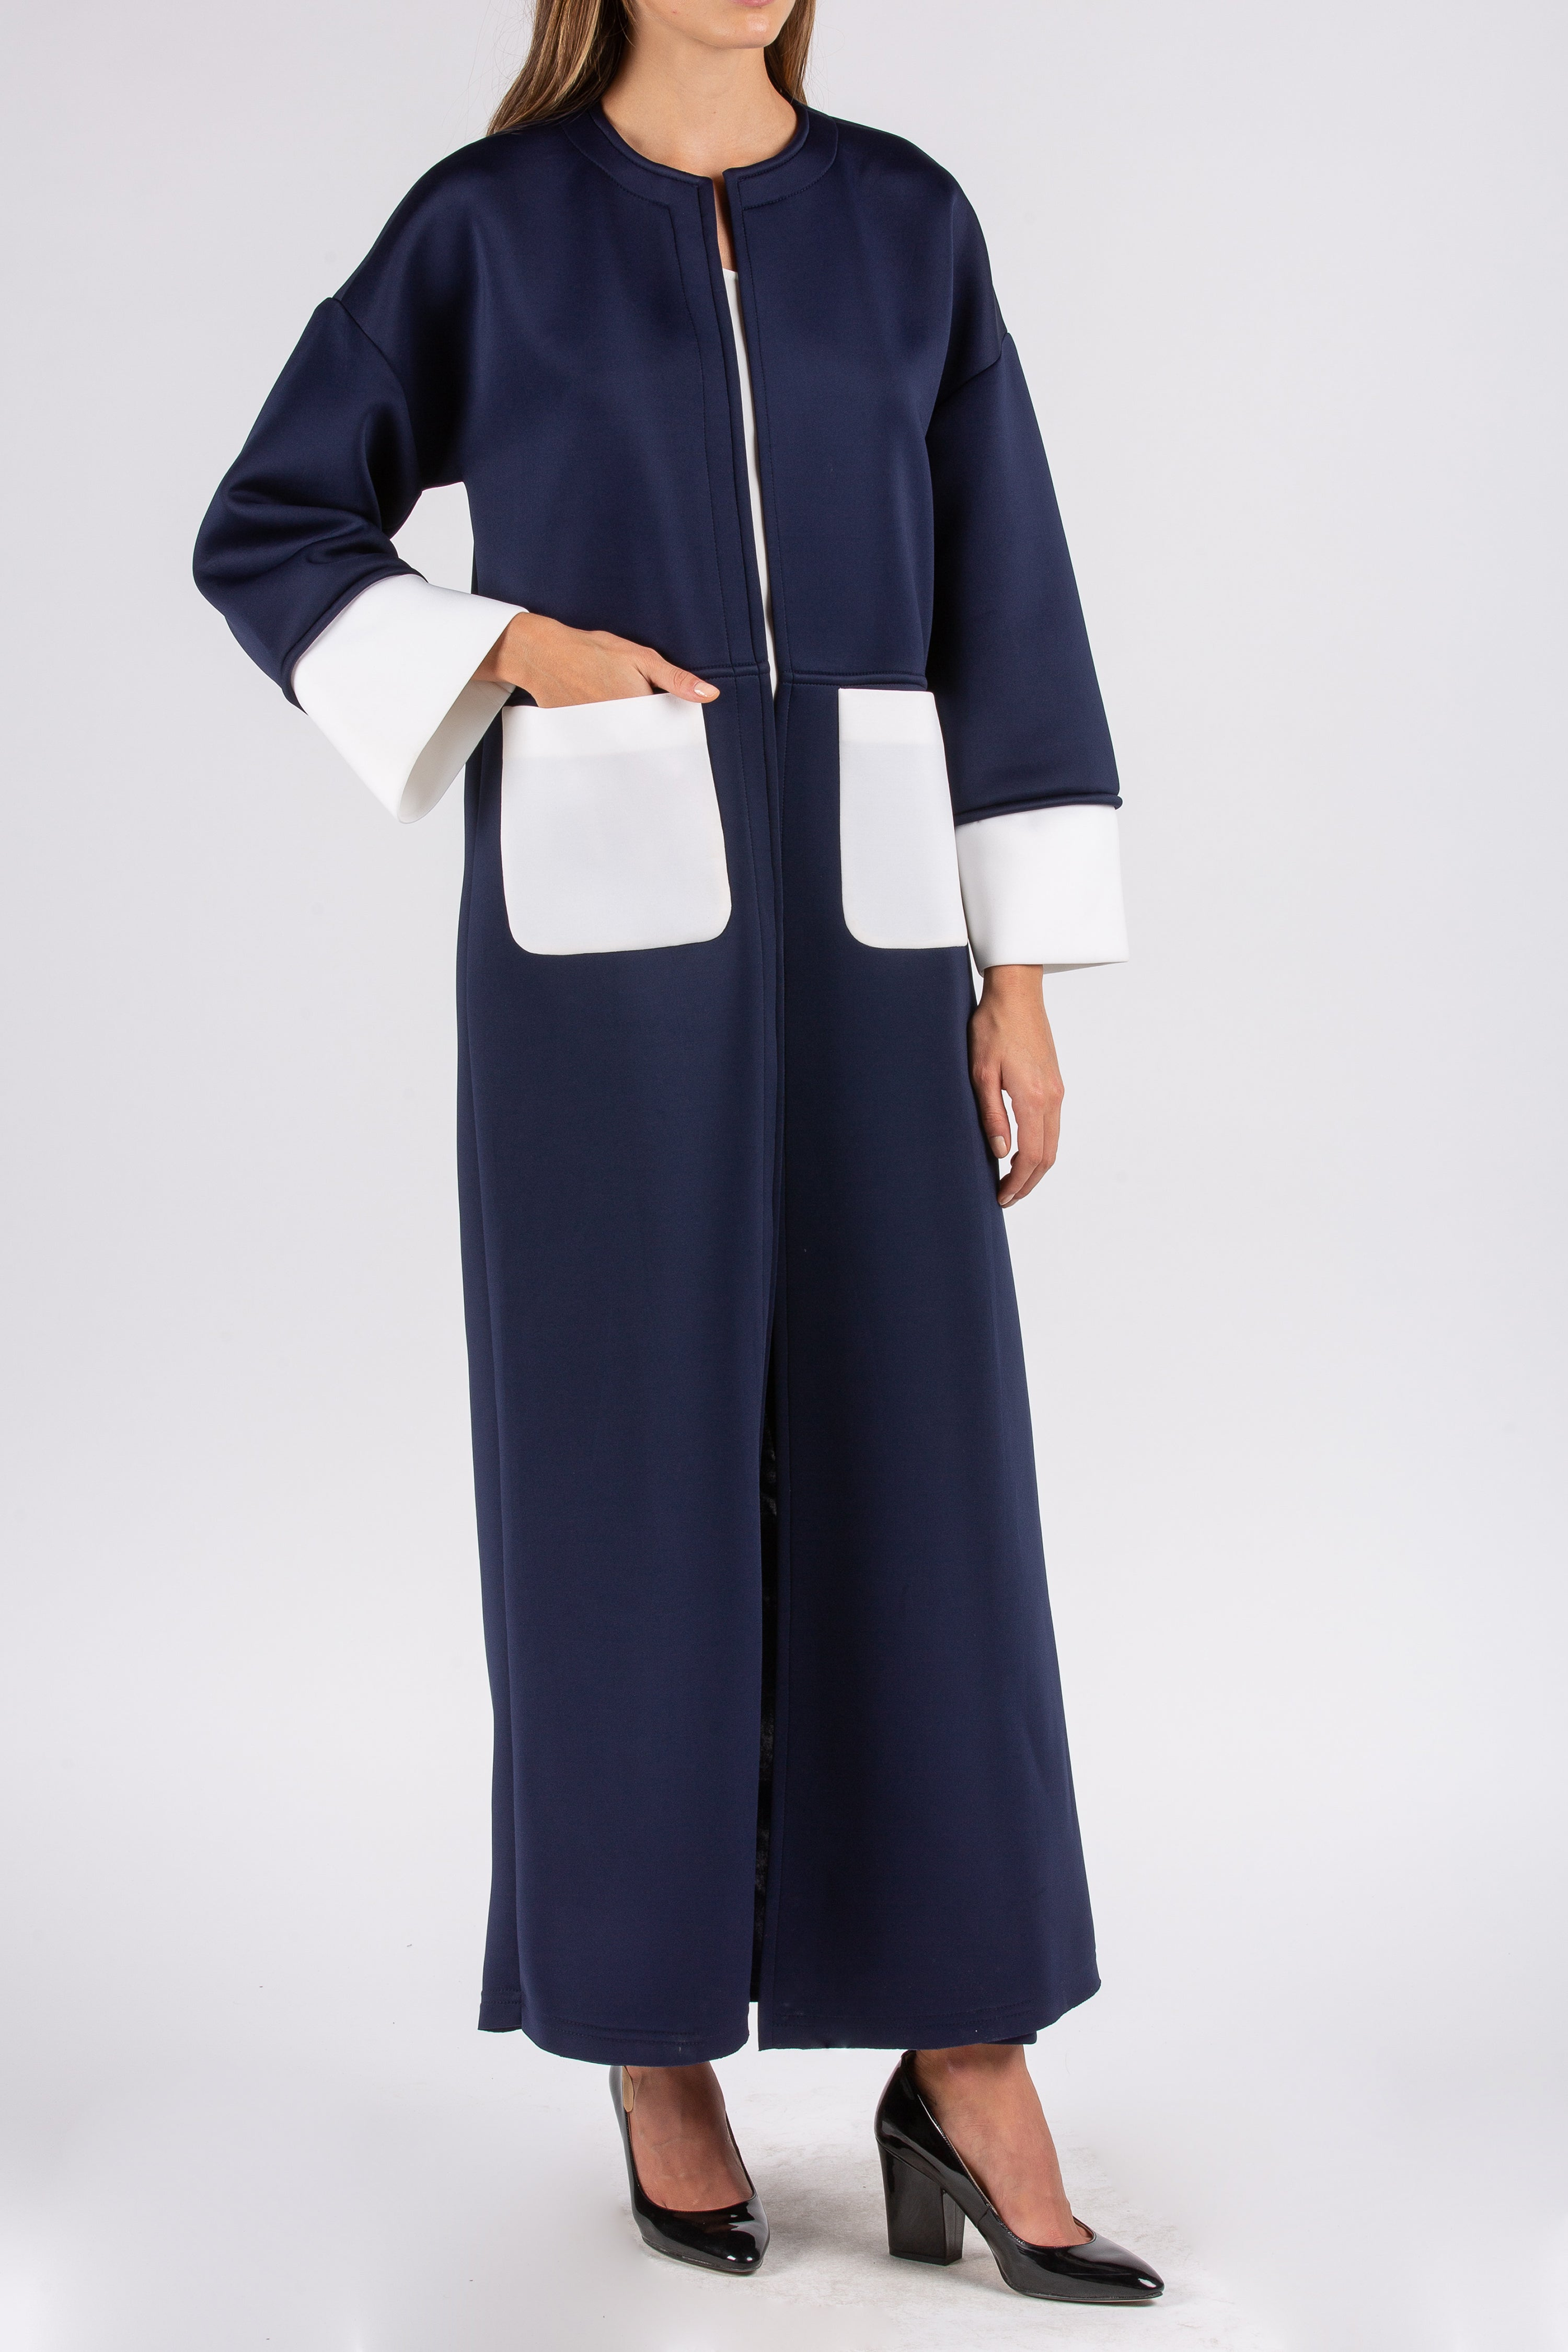 Navy Neoprene Abaya with Pockets